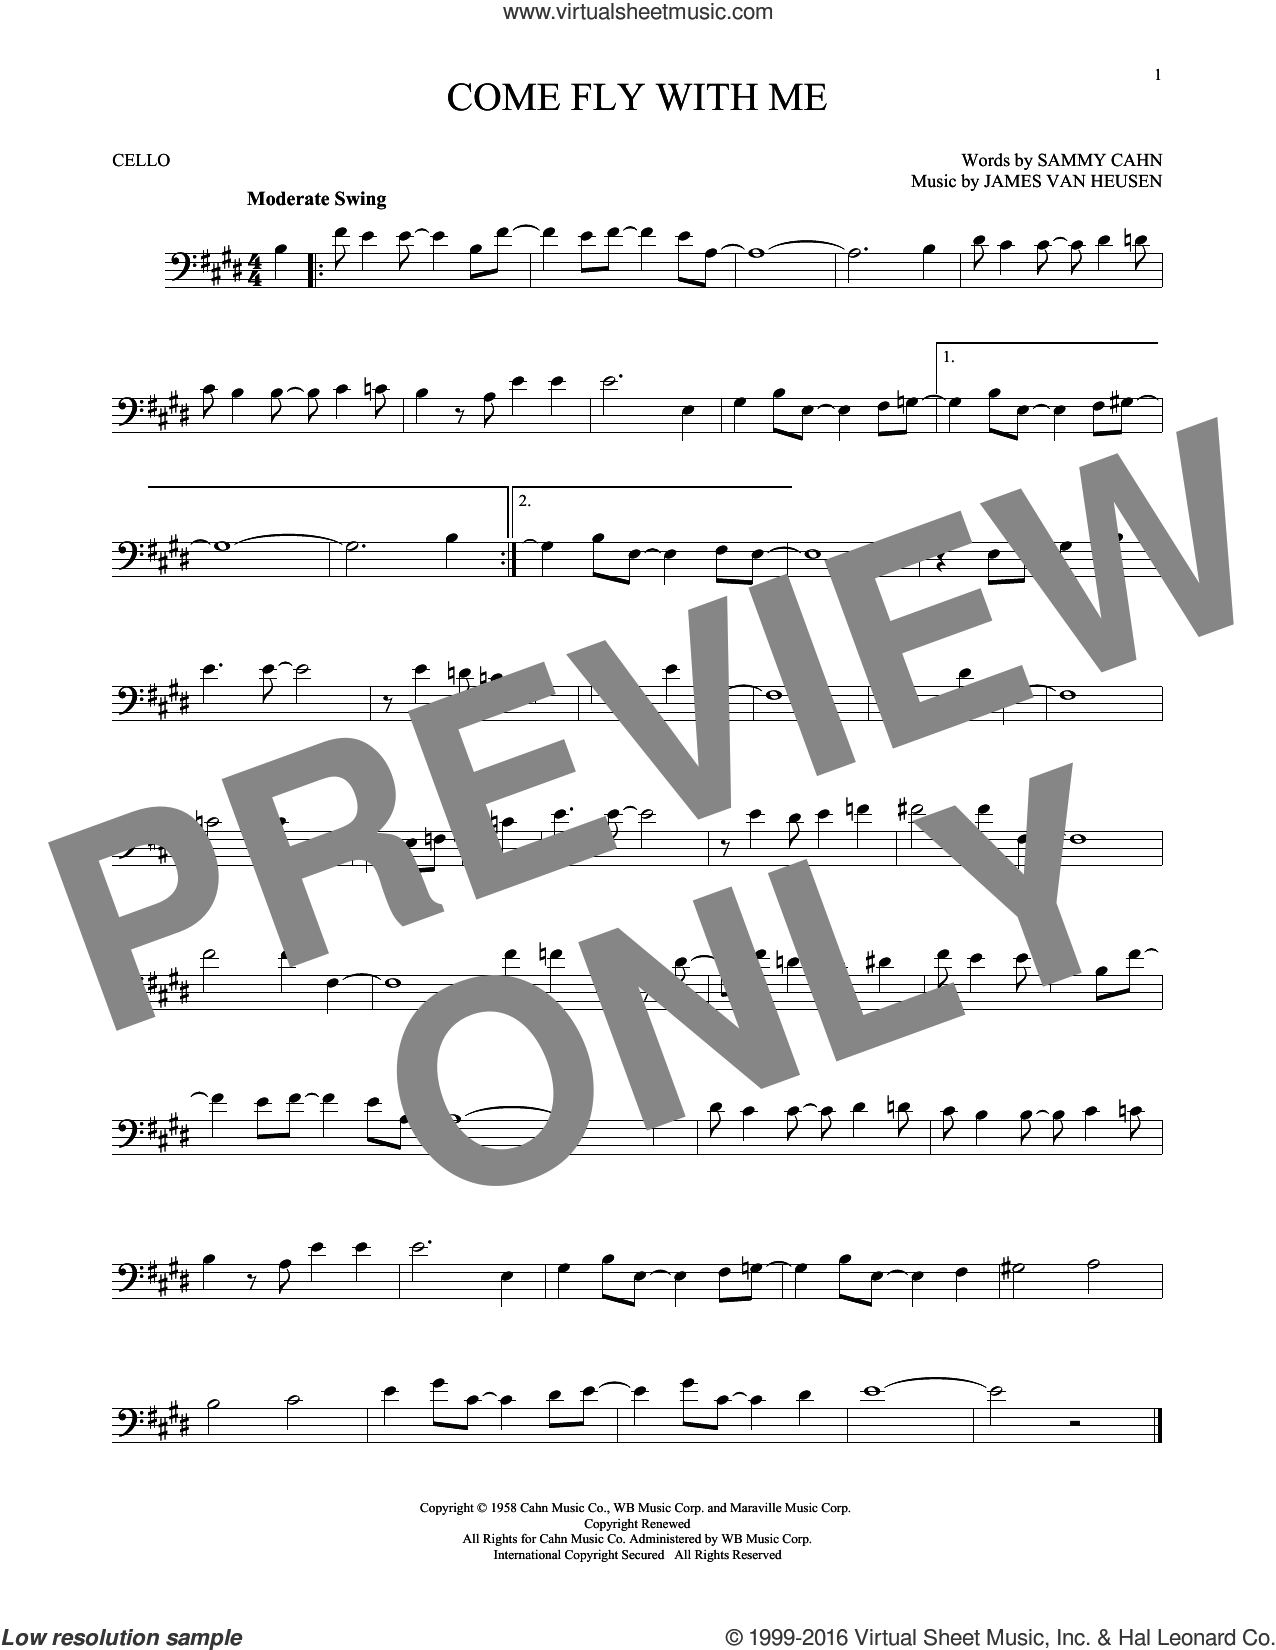 Come Fly With Me sheet music for cello solo by Sammy Cahn, Jimmy van Heusen and Sammy Cahn & James Van Heusen, intermediate skill level